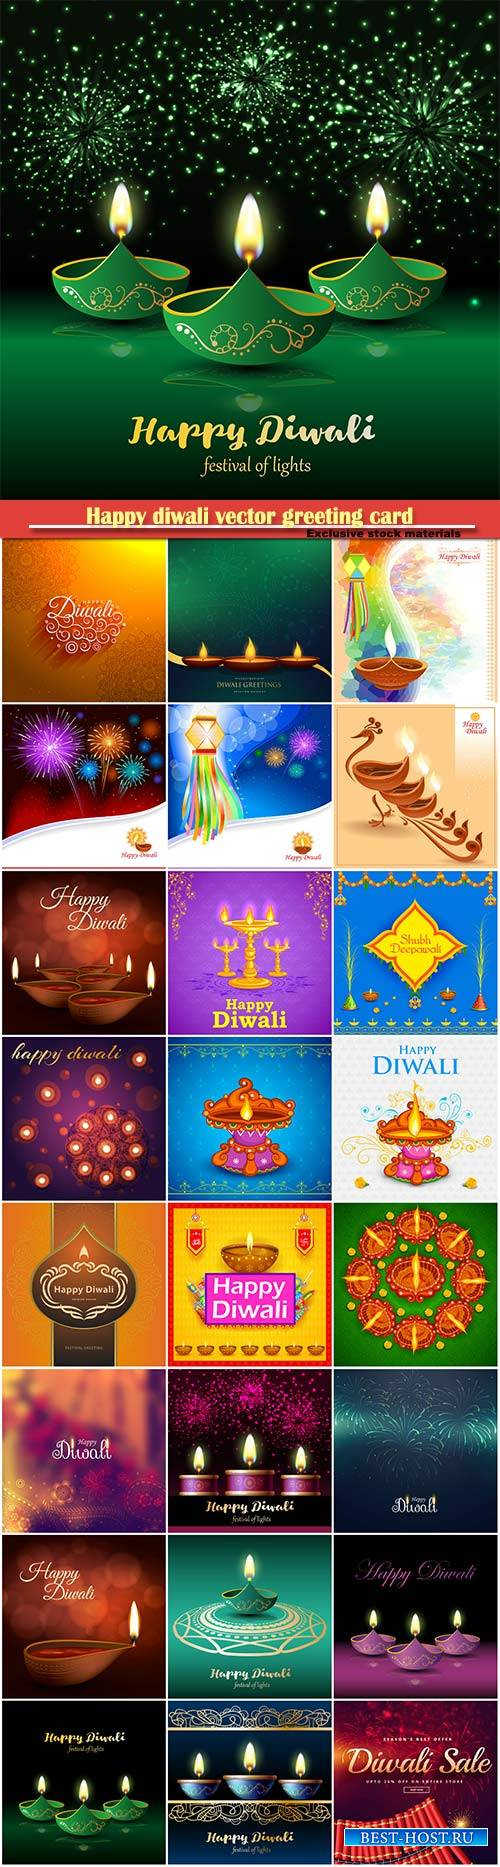 Happy diwali vector greeting card # 6